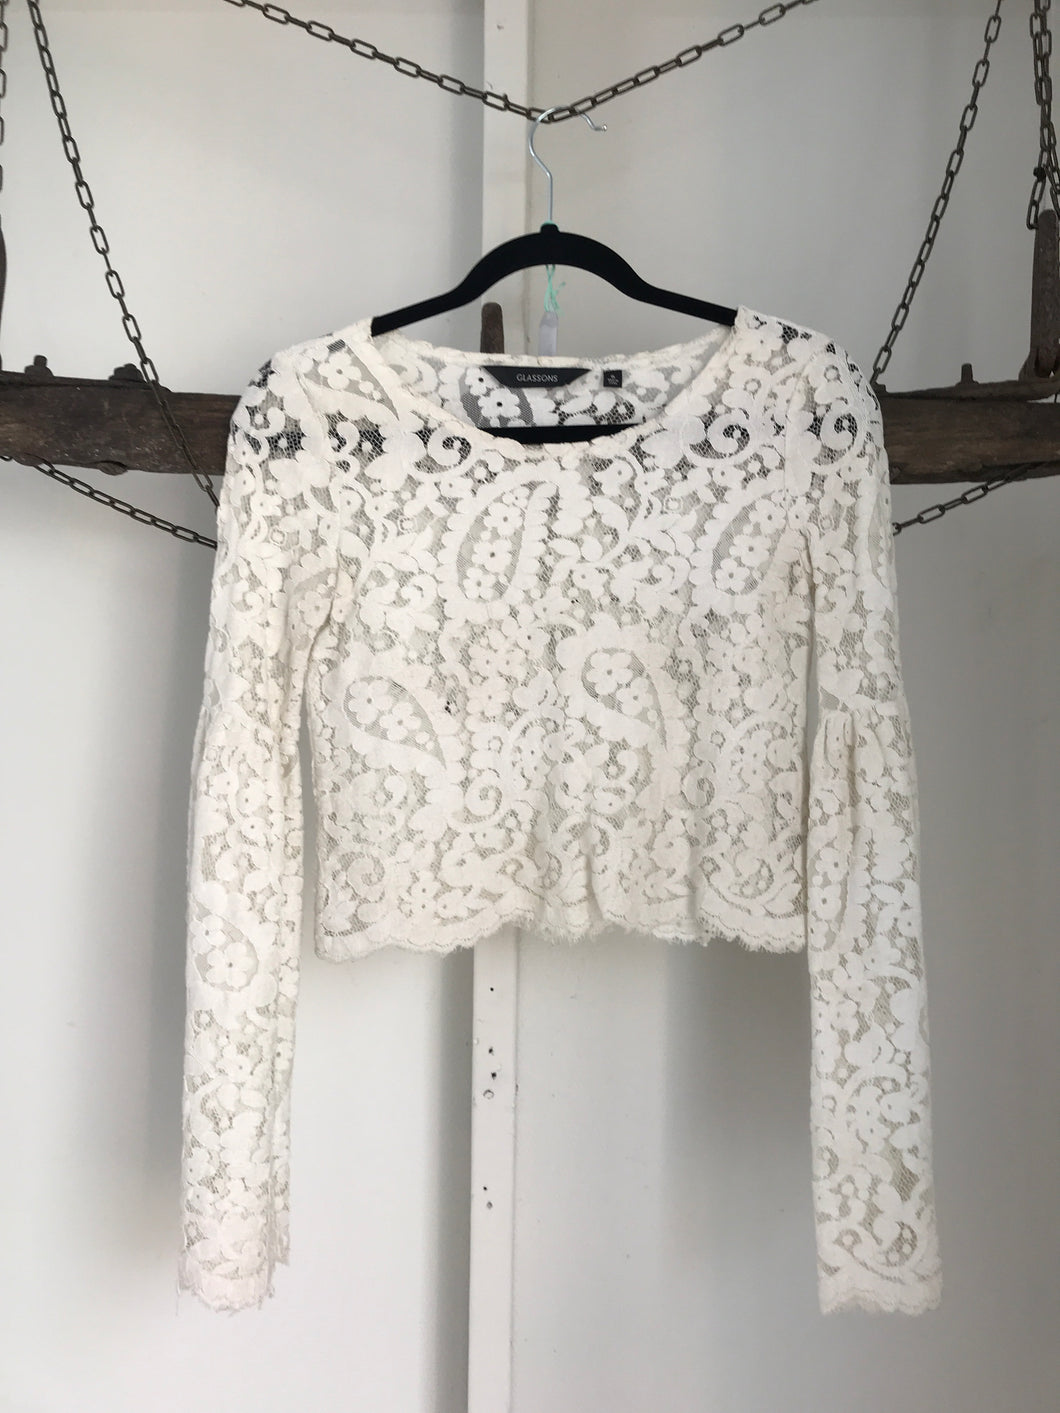 Glassons White Lace Long Sleeve Top Size 6